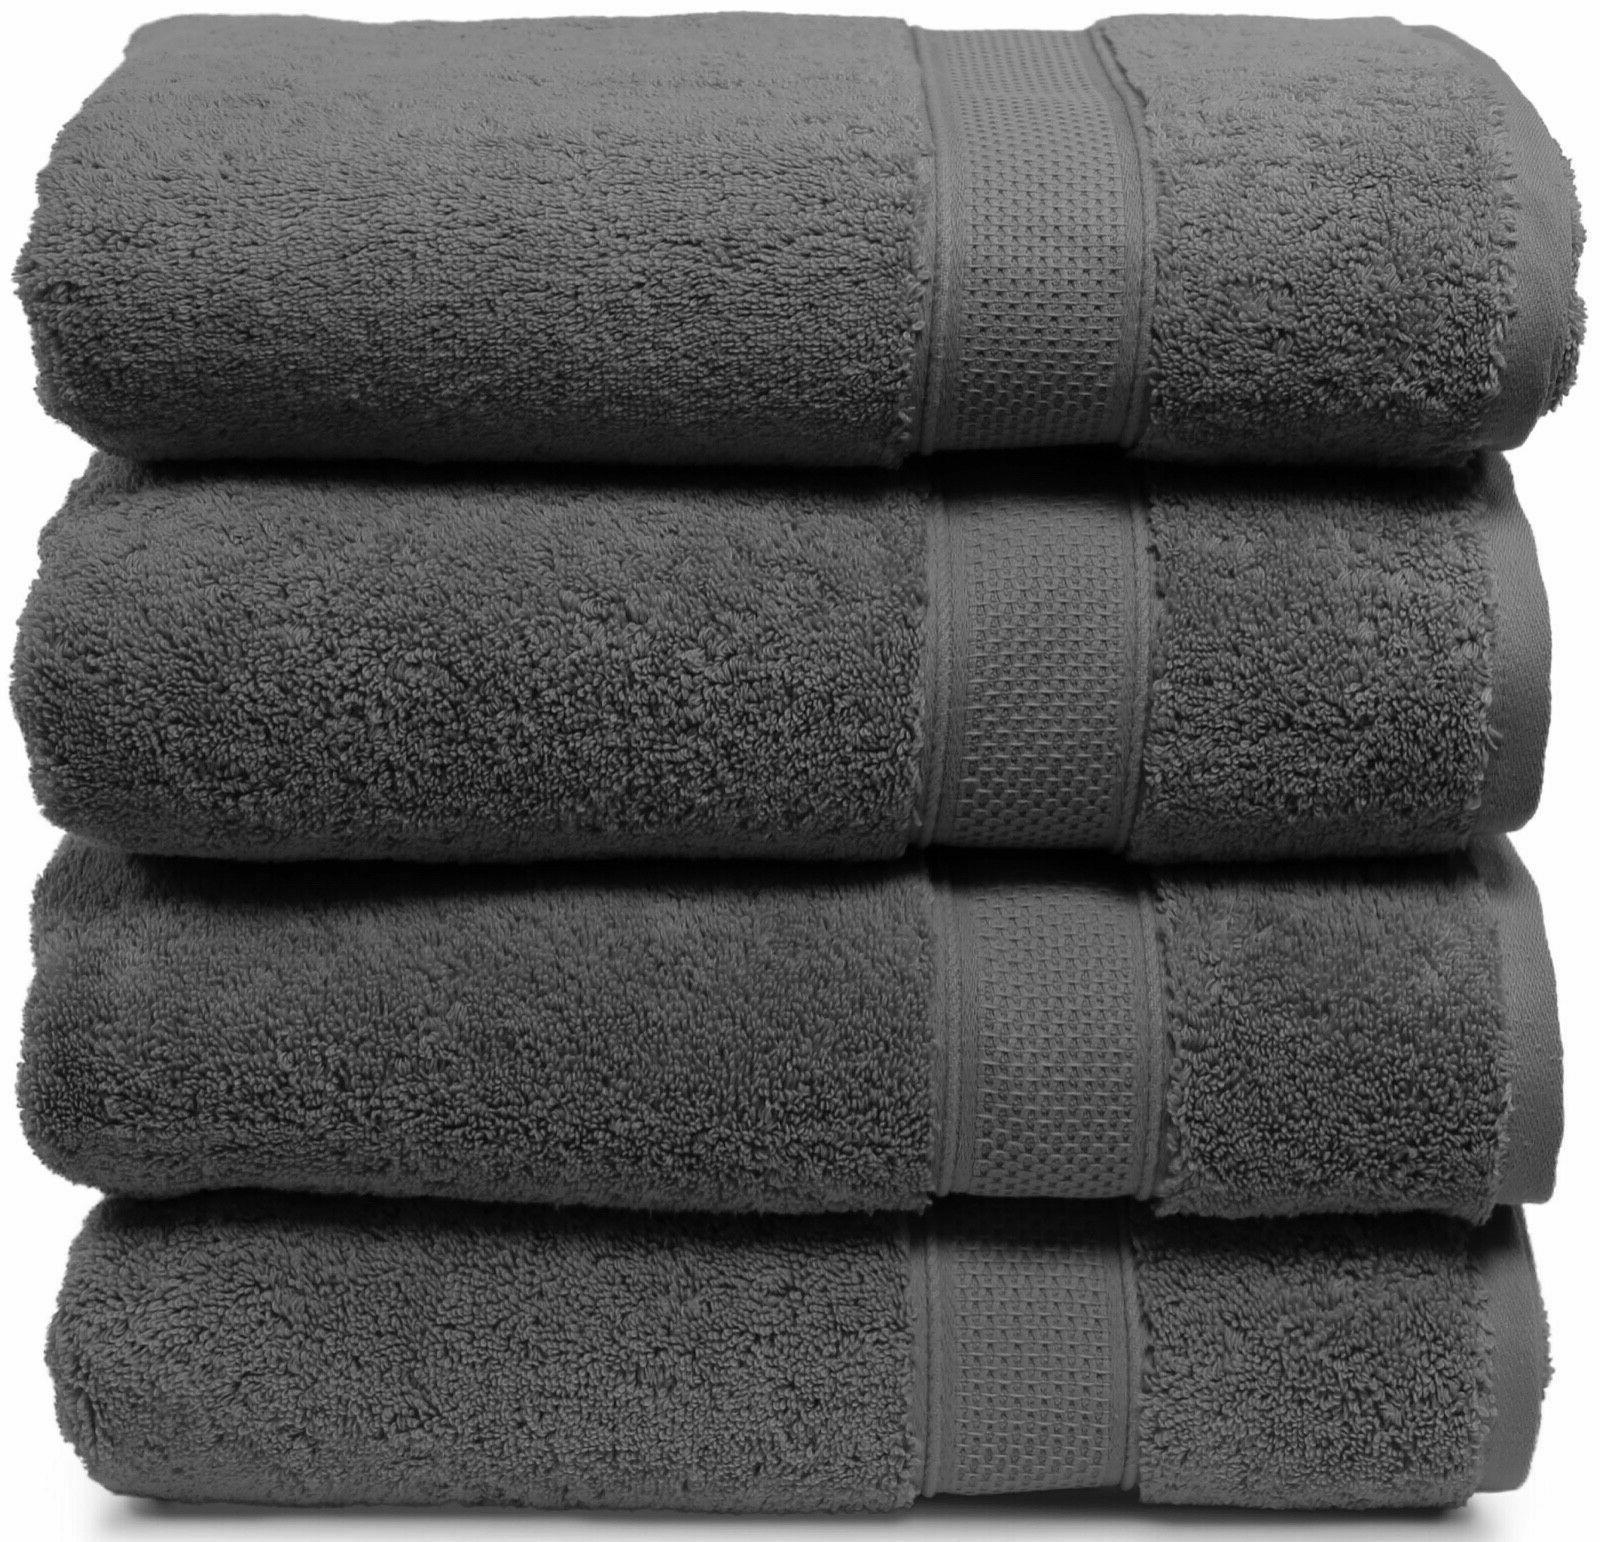 Maura Luxury Turkish 4 Extra Large Thick Absorbent